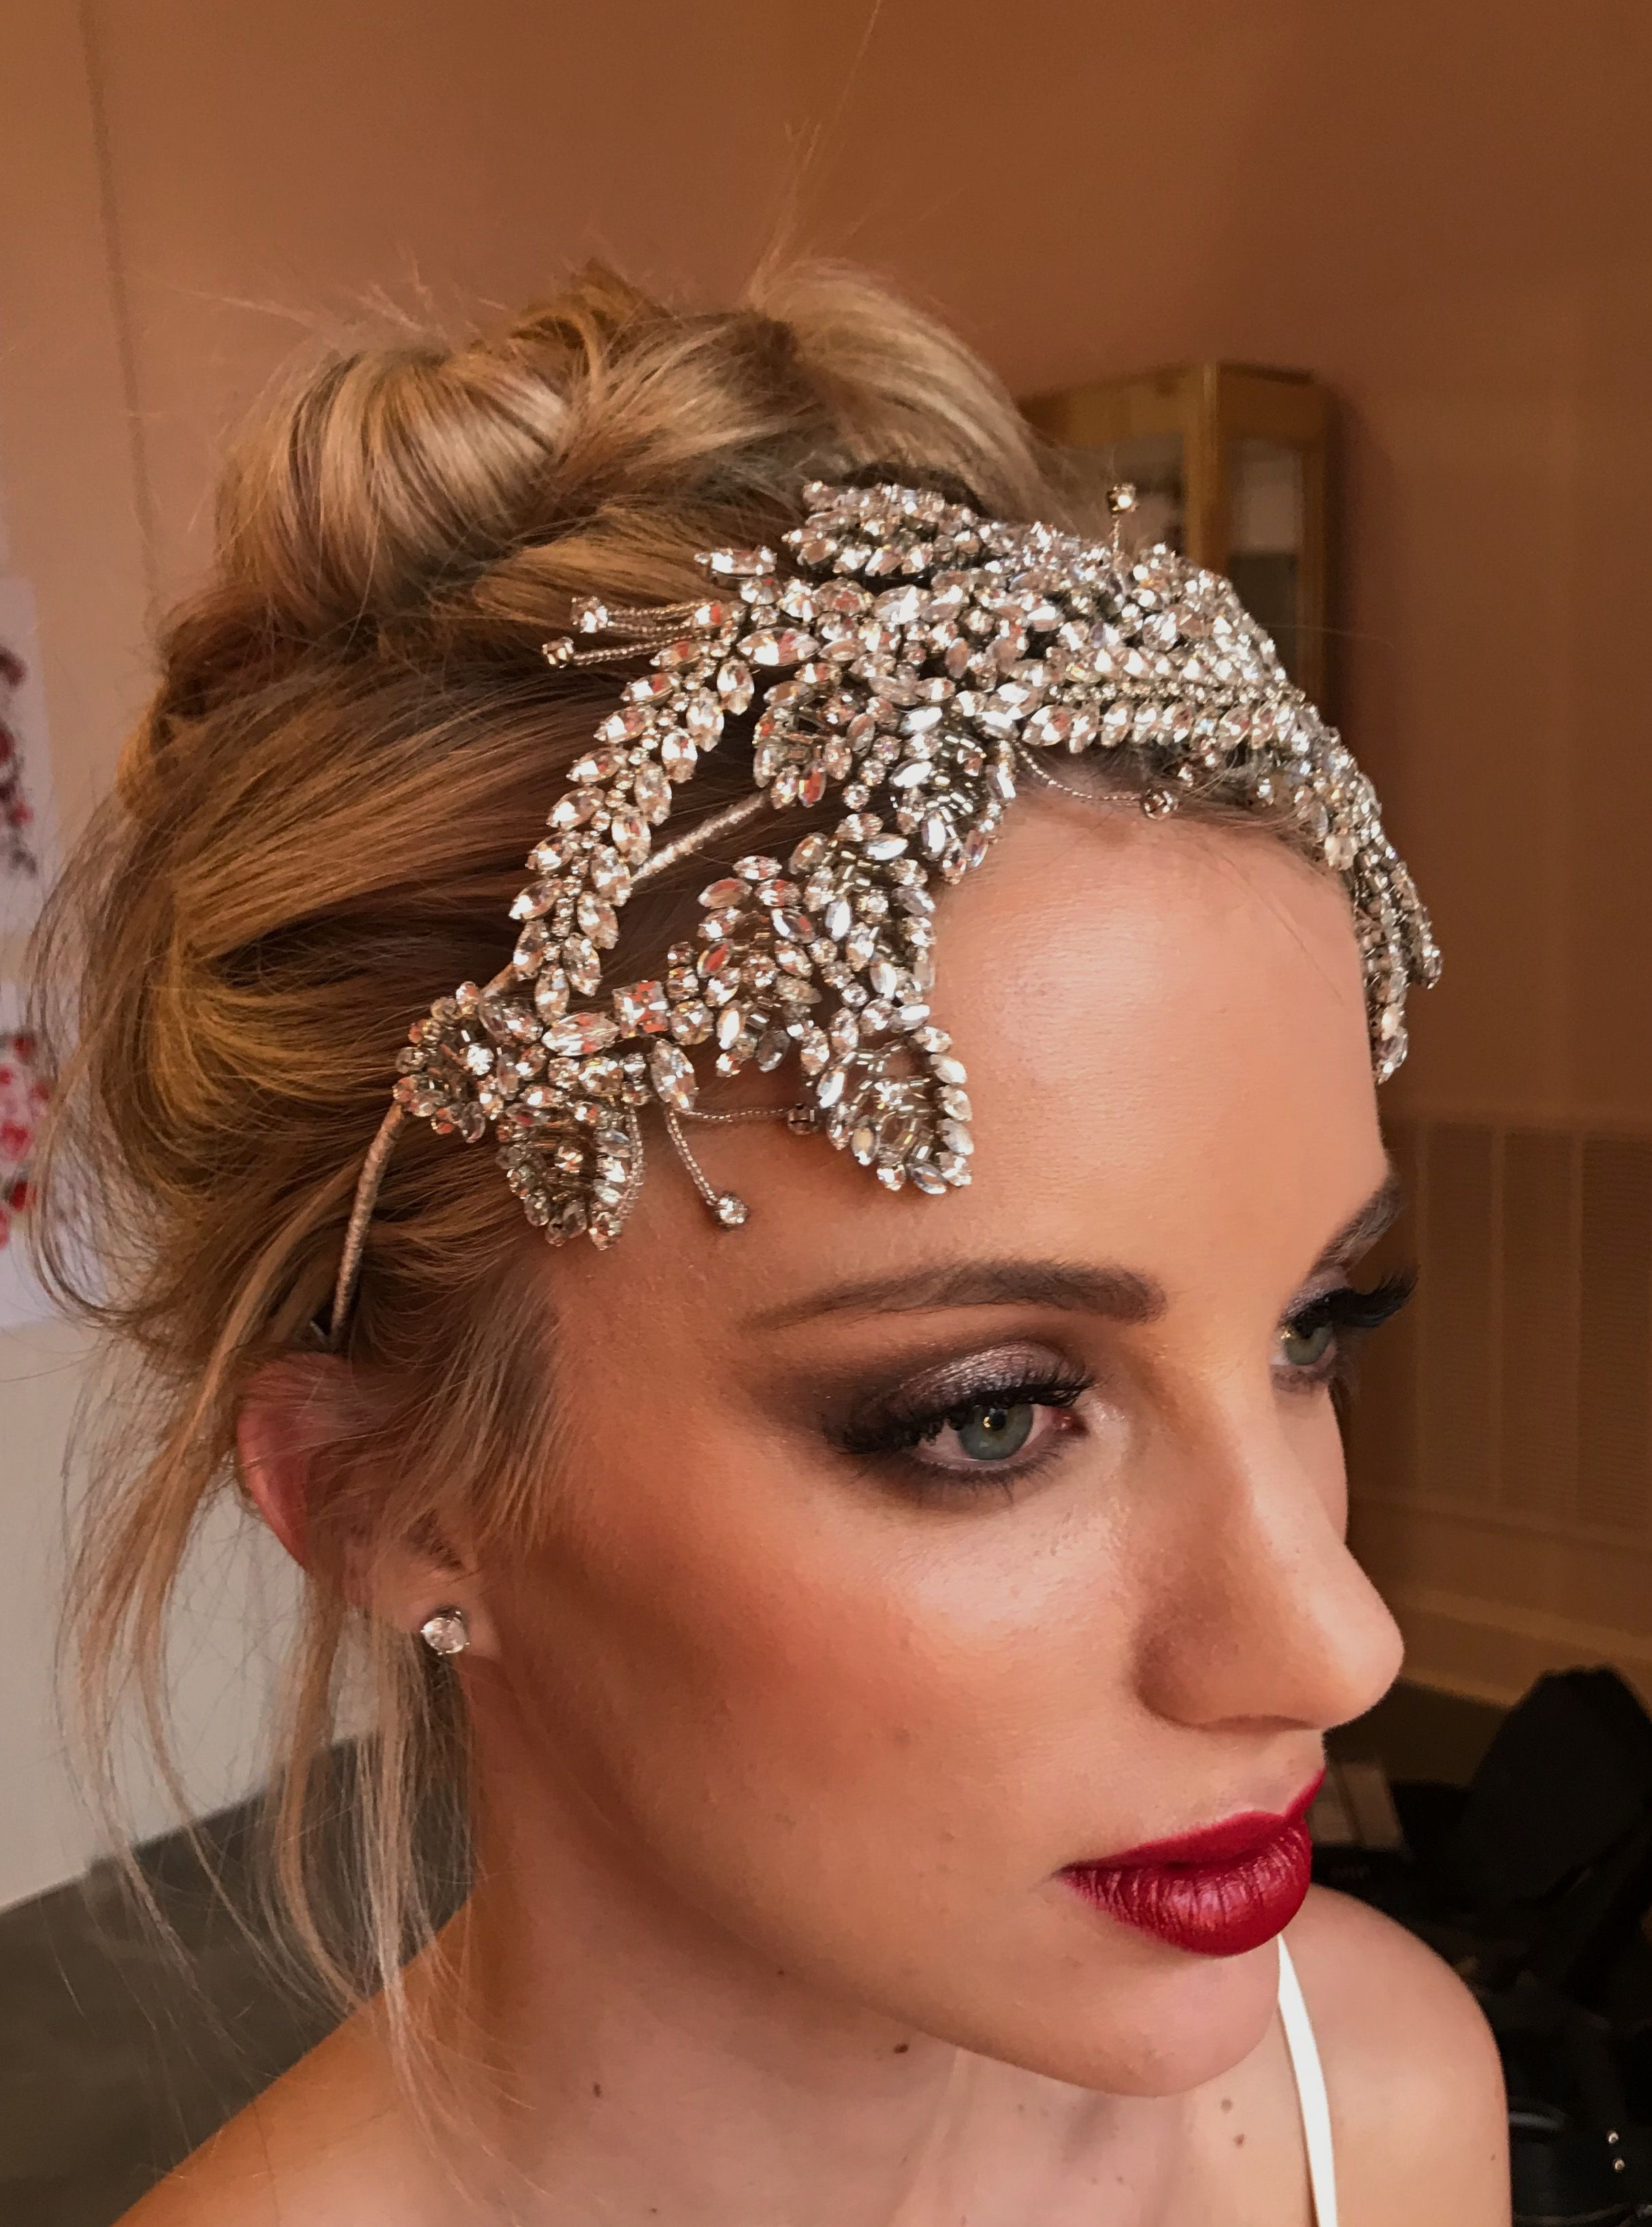 Smokey eyes and a strong red lip, Own your bold bridal